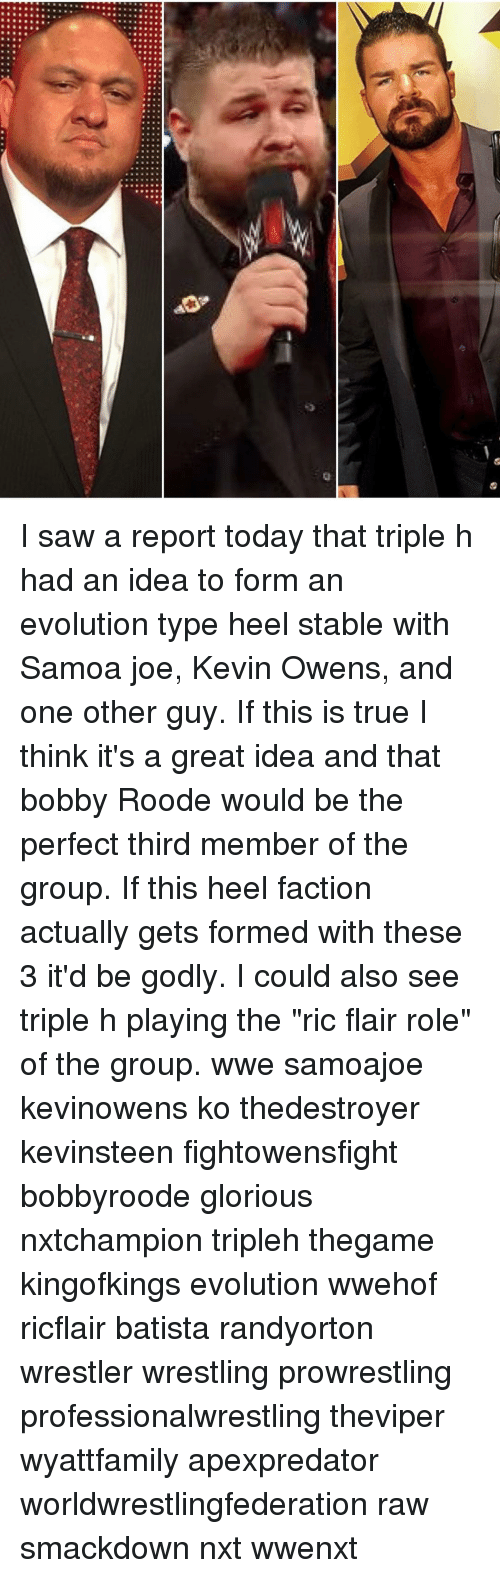 """Bobbie: 20 I saw a report today that triple h had an idea to form an evolution type heel stable with Samoa joe, Kevin Owens, and one other guy. If this is true I think it's a great idea and that bobby Roode would be the perfect third member of the group. If this heel faction actually gets formed with these 3 it'd be godly. I could also see triple h playing the """"ric flair role"""" of the group. wwe samoajoe kevinowens ko thedestroyer kevinsteen fightowensfight bobbyroode glorious nxtchampion tripleh thegame kingofkings evolution wwehof ricflair batista randyorton wrestler wrestling prowrestling professionalwrestling theviper wyattfamily apexpredator worldwrestlingfederation raw smackdown nxt wwenxt"""